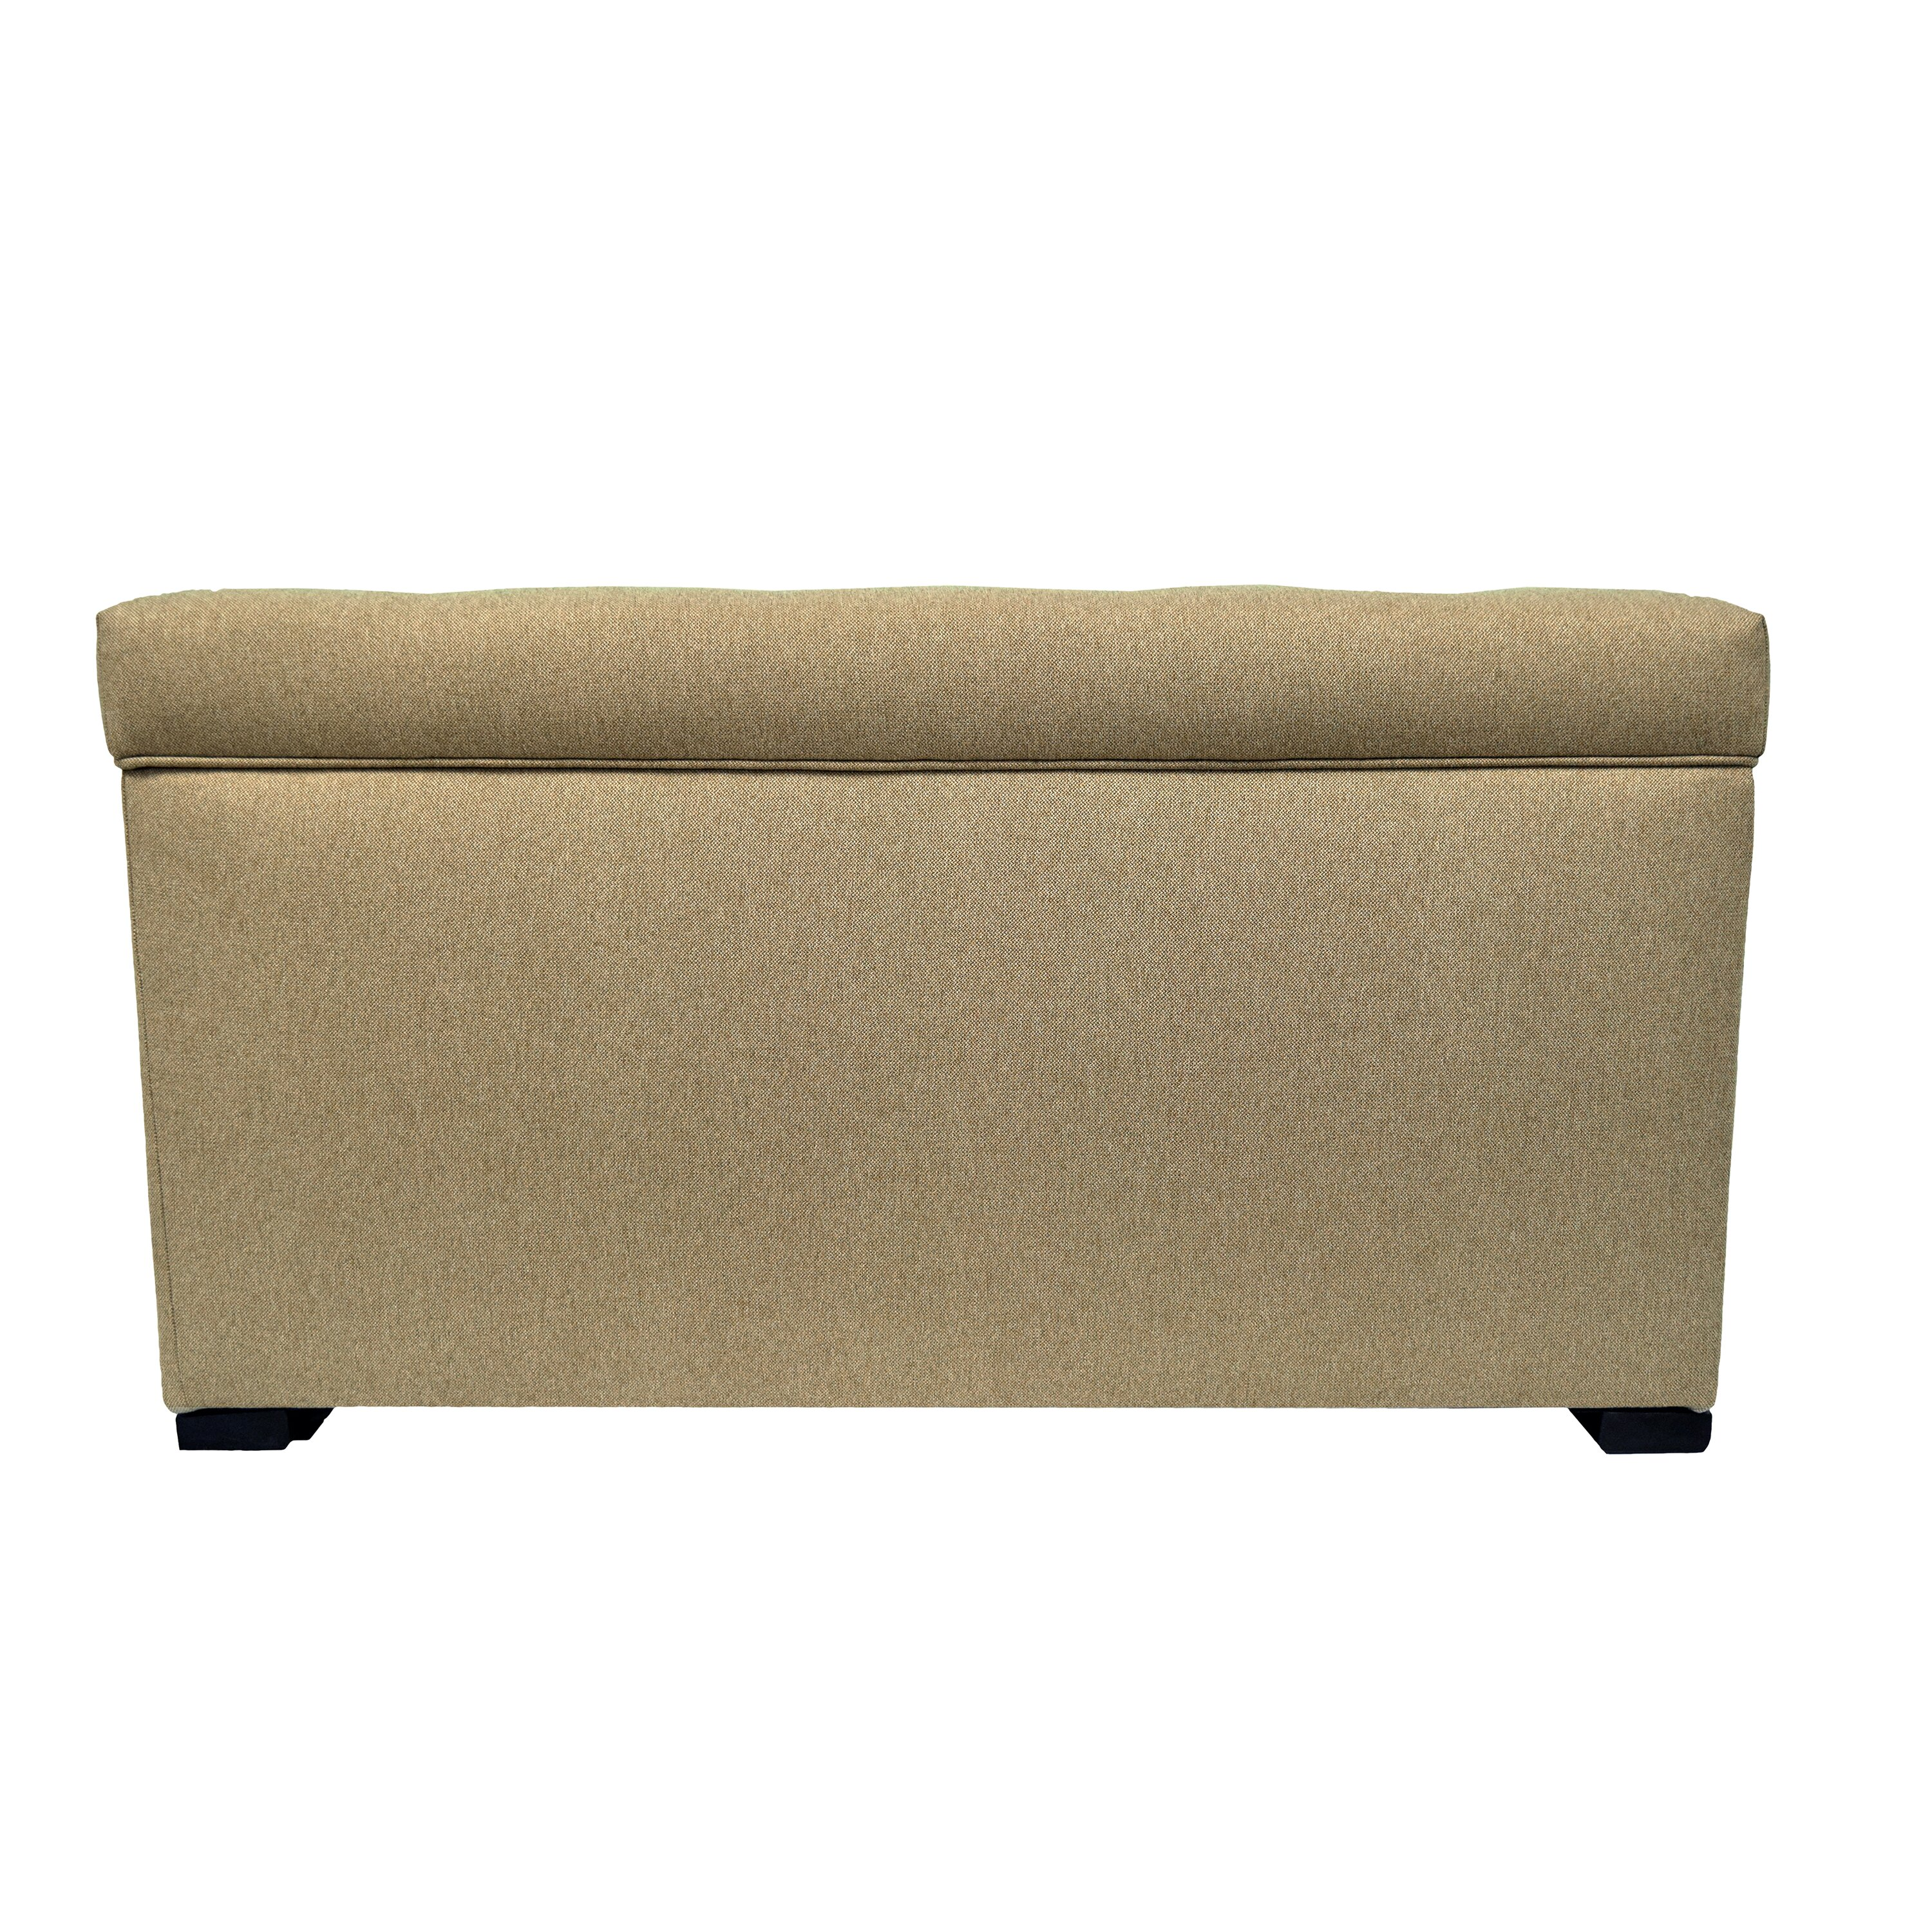 Mjlfurniture Allure Upholstered Storage Bedroom Bench Reviews Wayfair